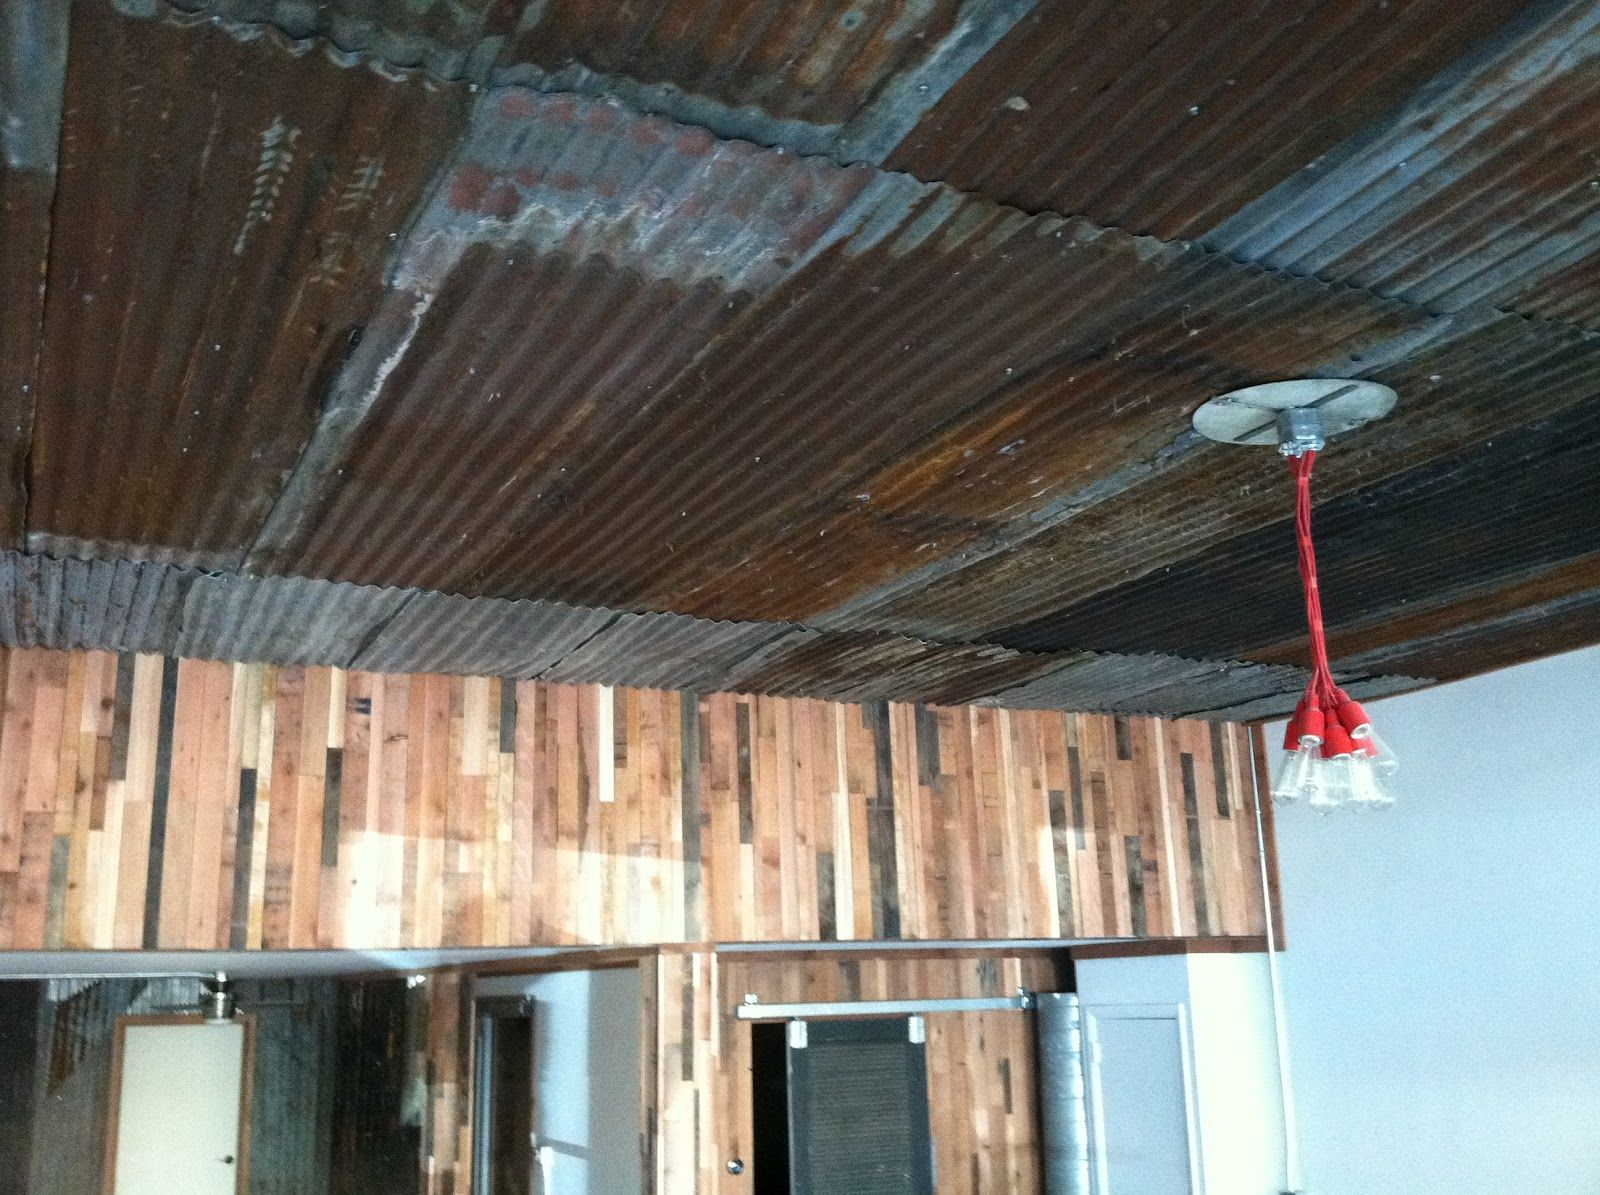 Images about corrugated metal on pinterest - Using Corrugated Metal For Ceiling The Coat Shop Building